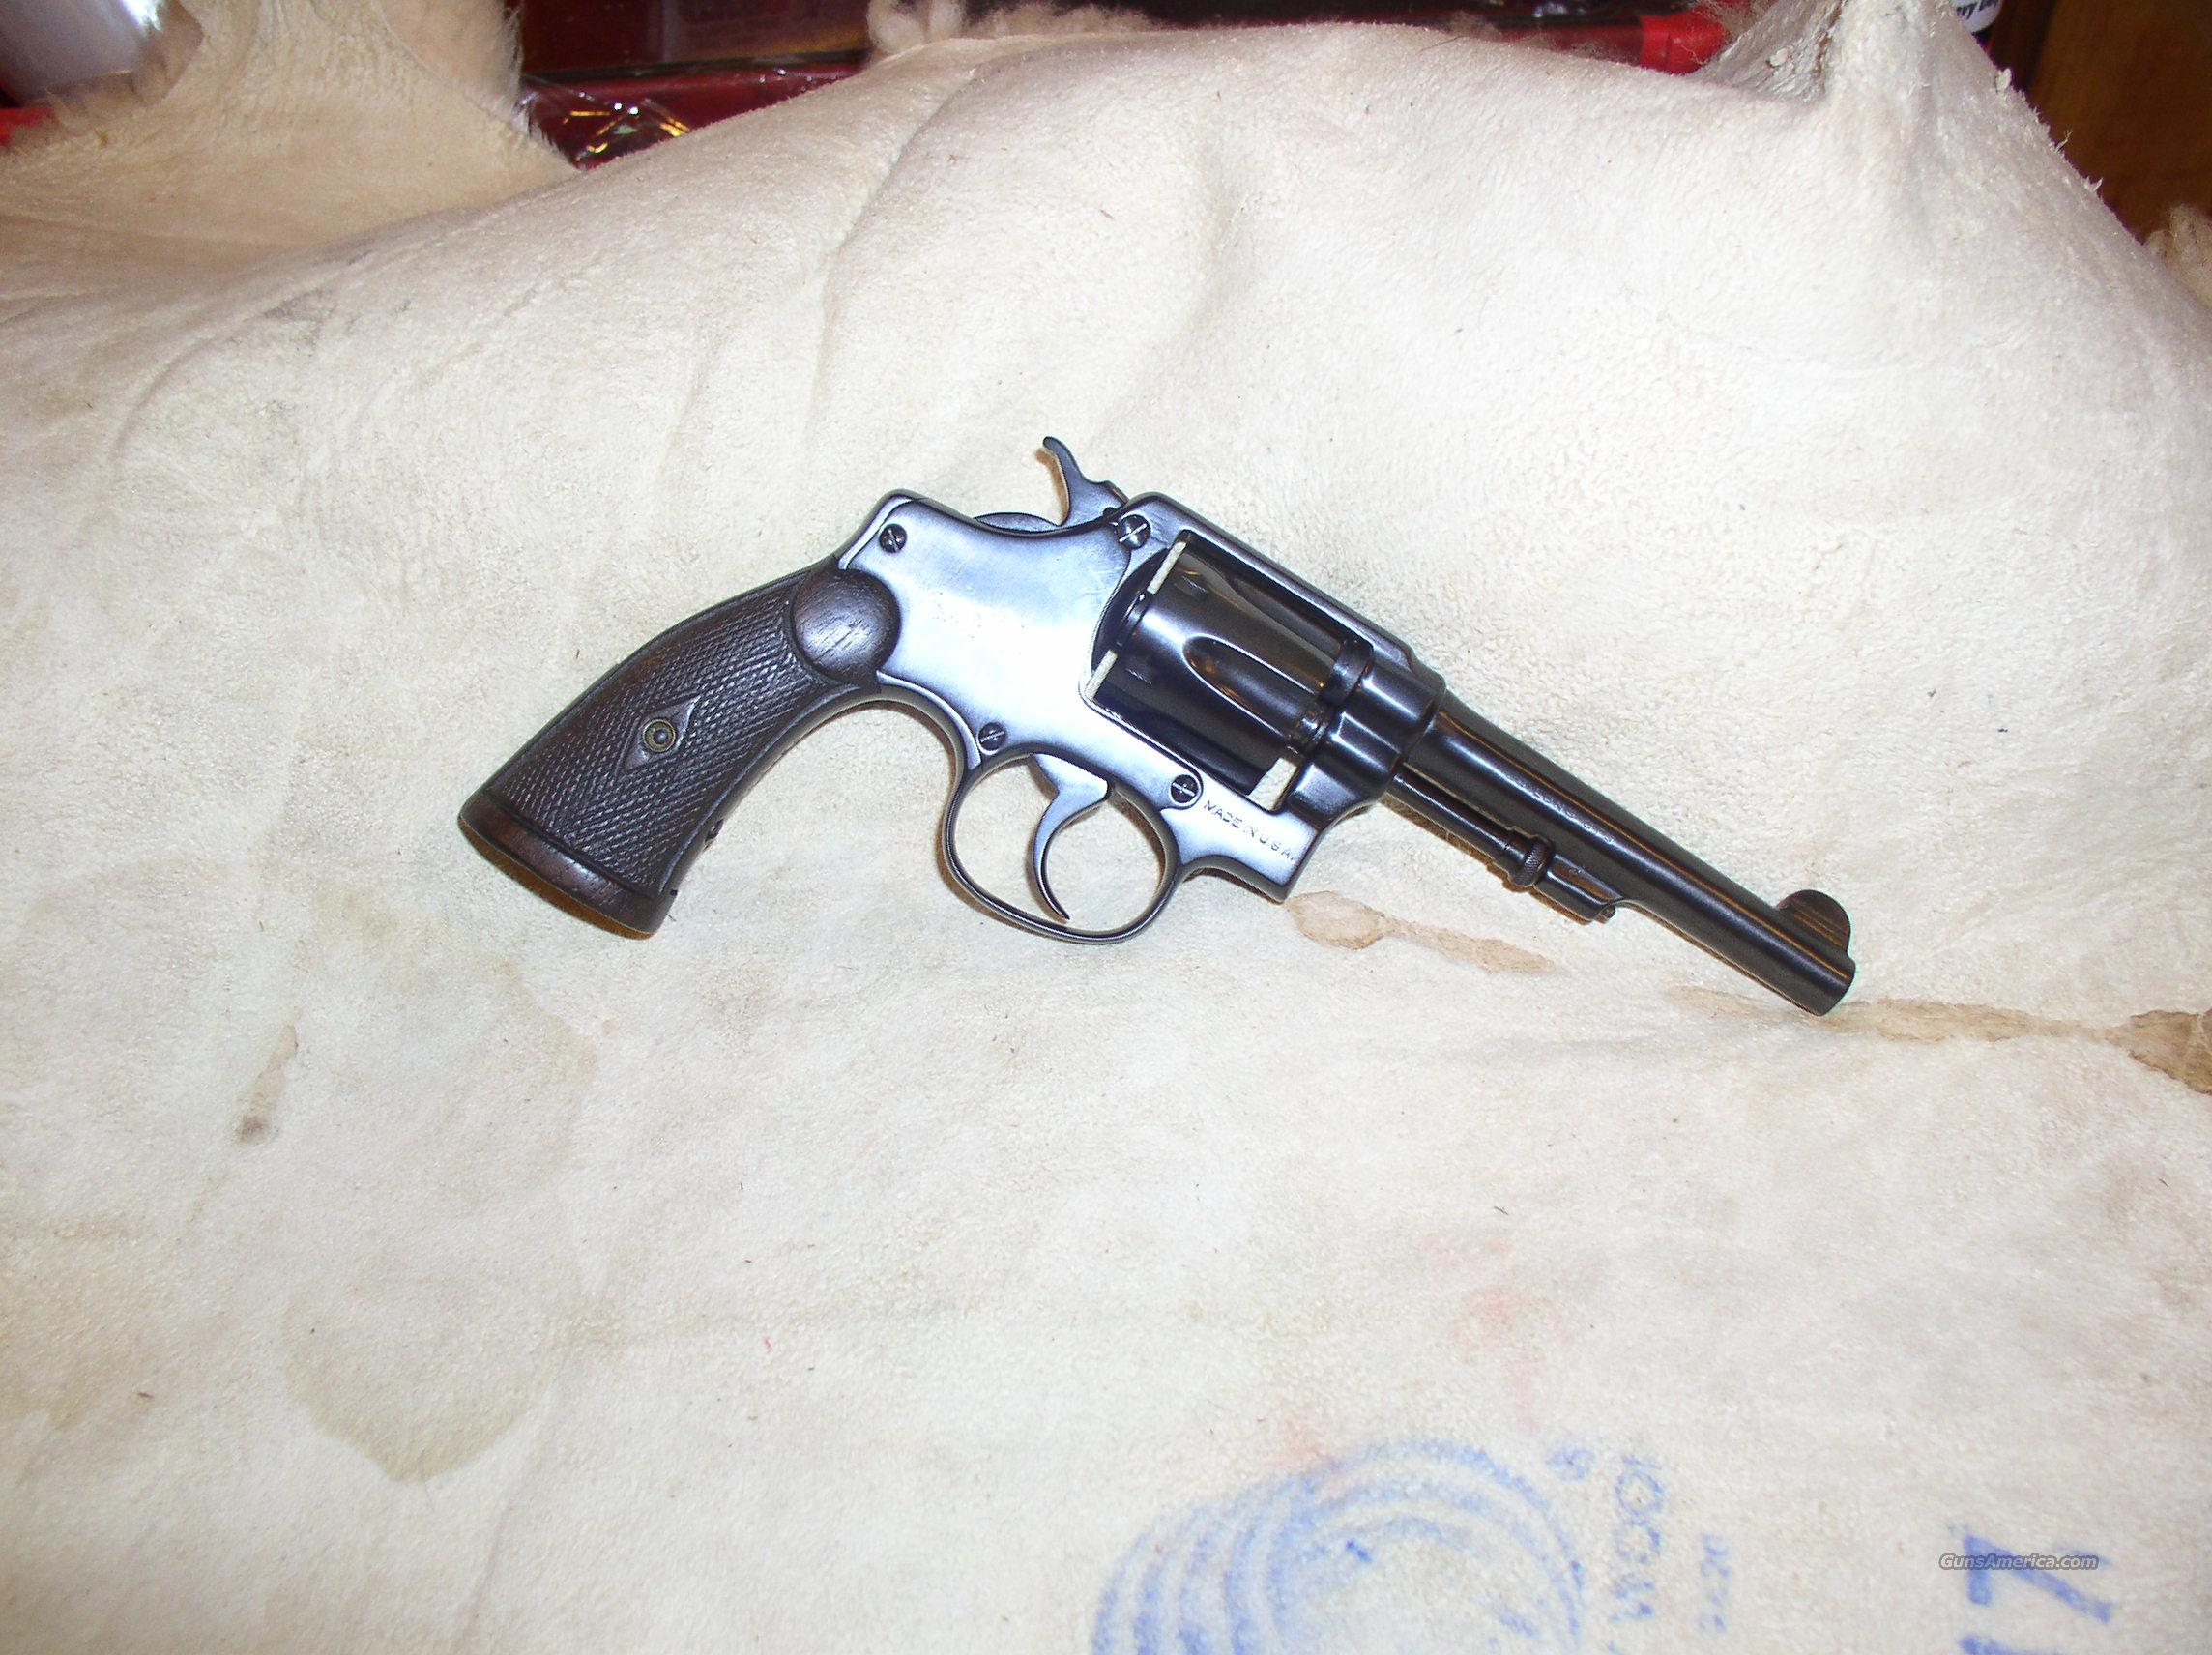 SMITH WESSON   32 LONG    5 SCREW  Guns > Pistols > Smith & Wesson Revolvers > Pocket Pistols